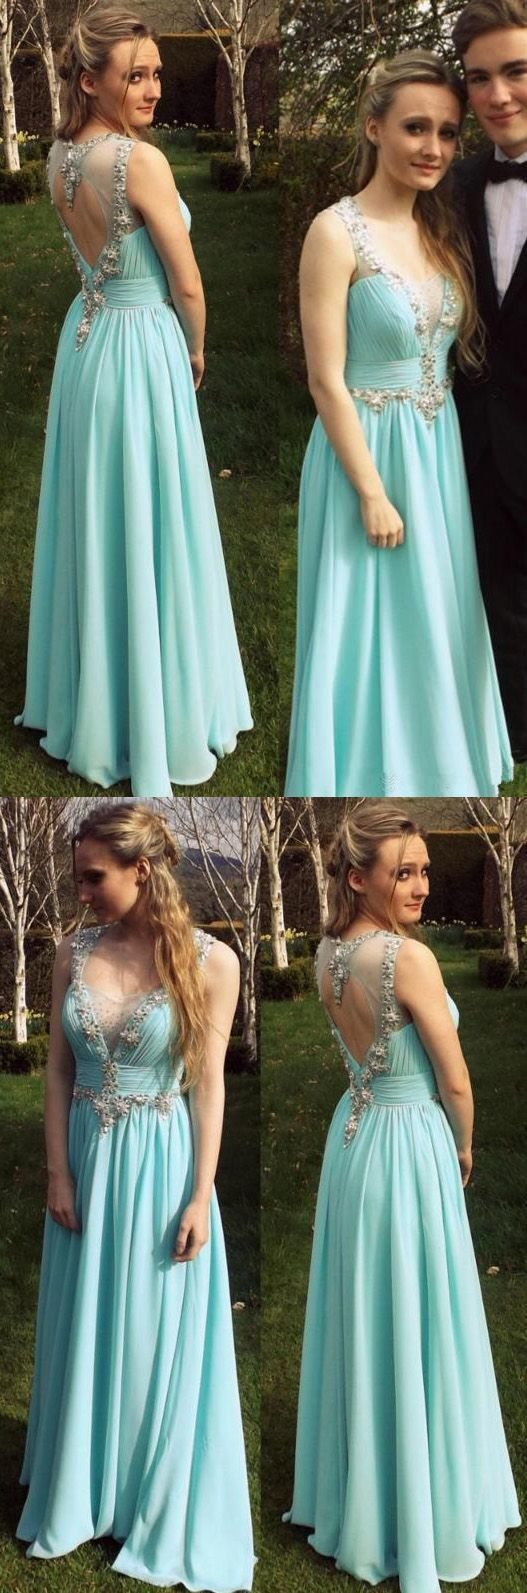 Pretty Charming Chiffon Prom Dresses,Evening dress